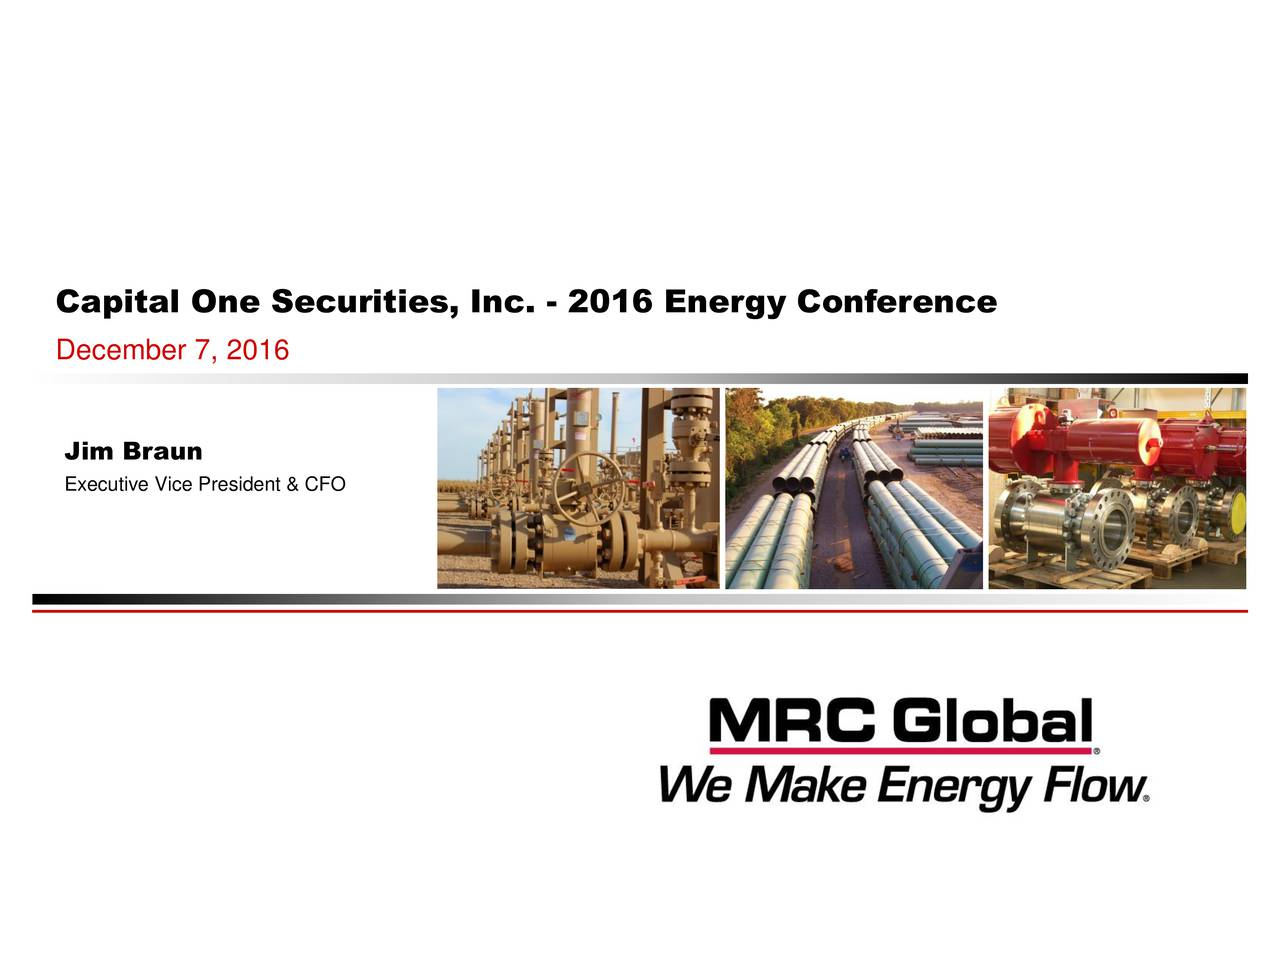 Capital One Securities, Inc. - 2016 Energy Conference December 7, 2016 Jim Braun Executive Vice President & CFO